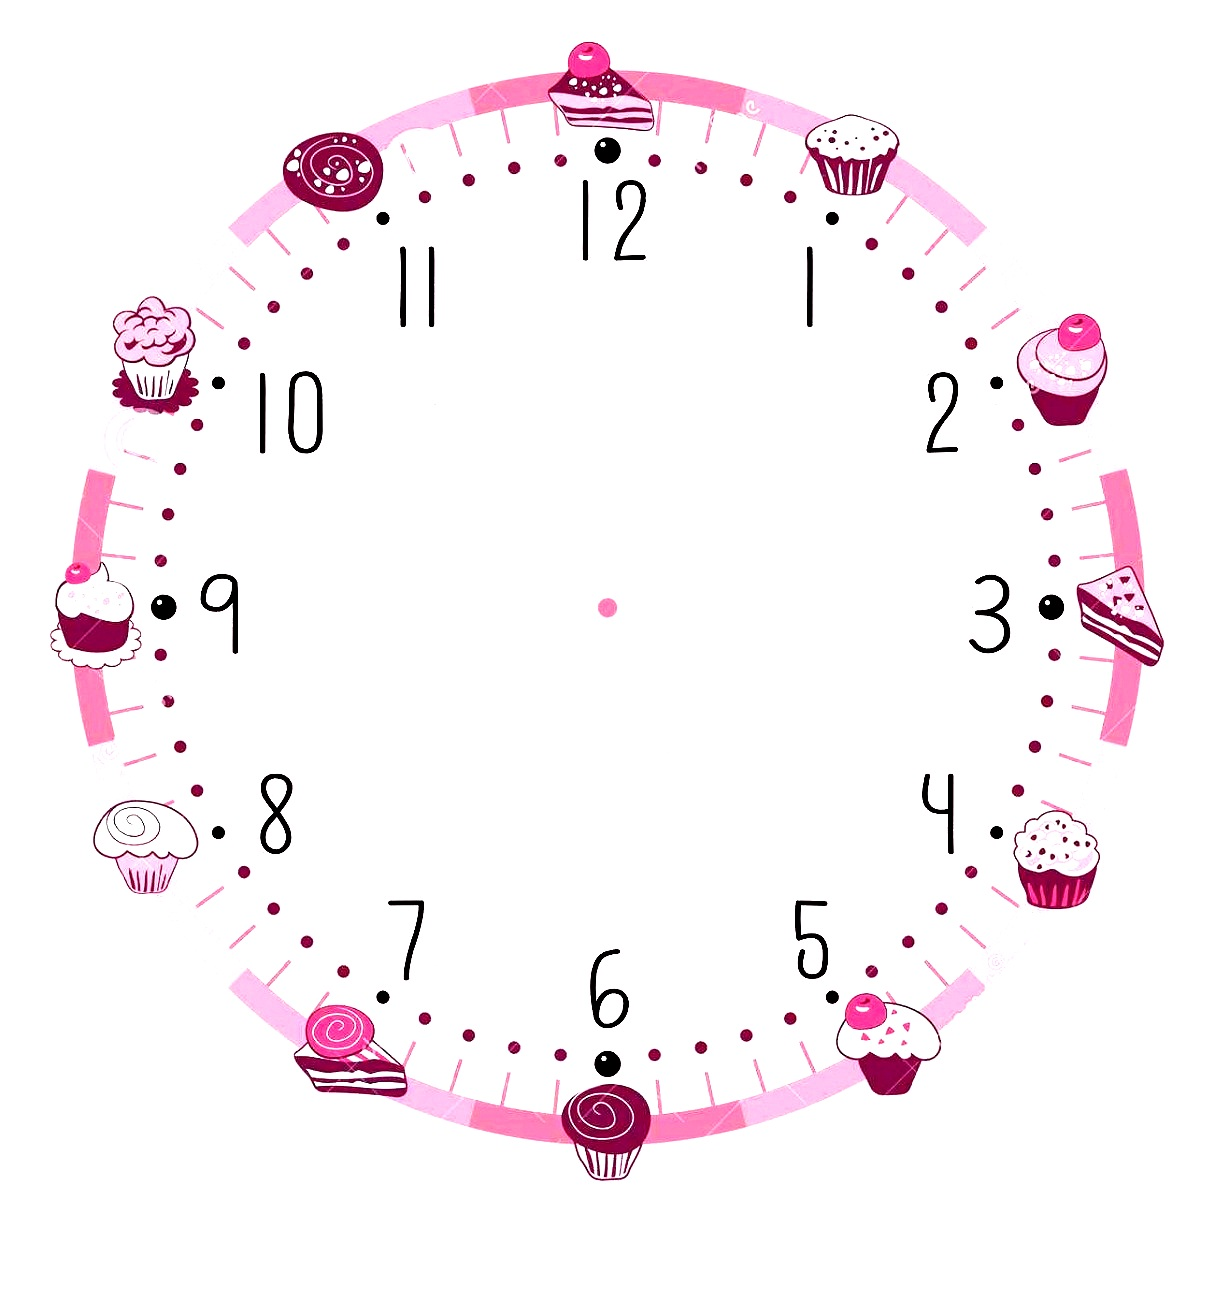 graphic relating to Clock Template Printable named Blank Clock Template Printable Sport Shelter